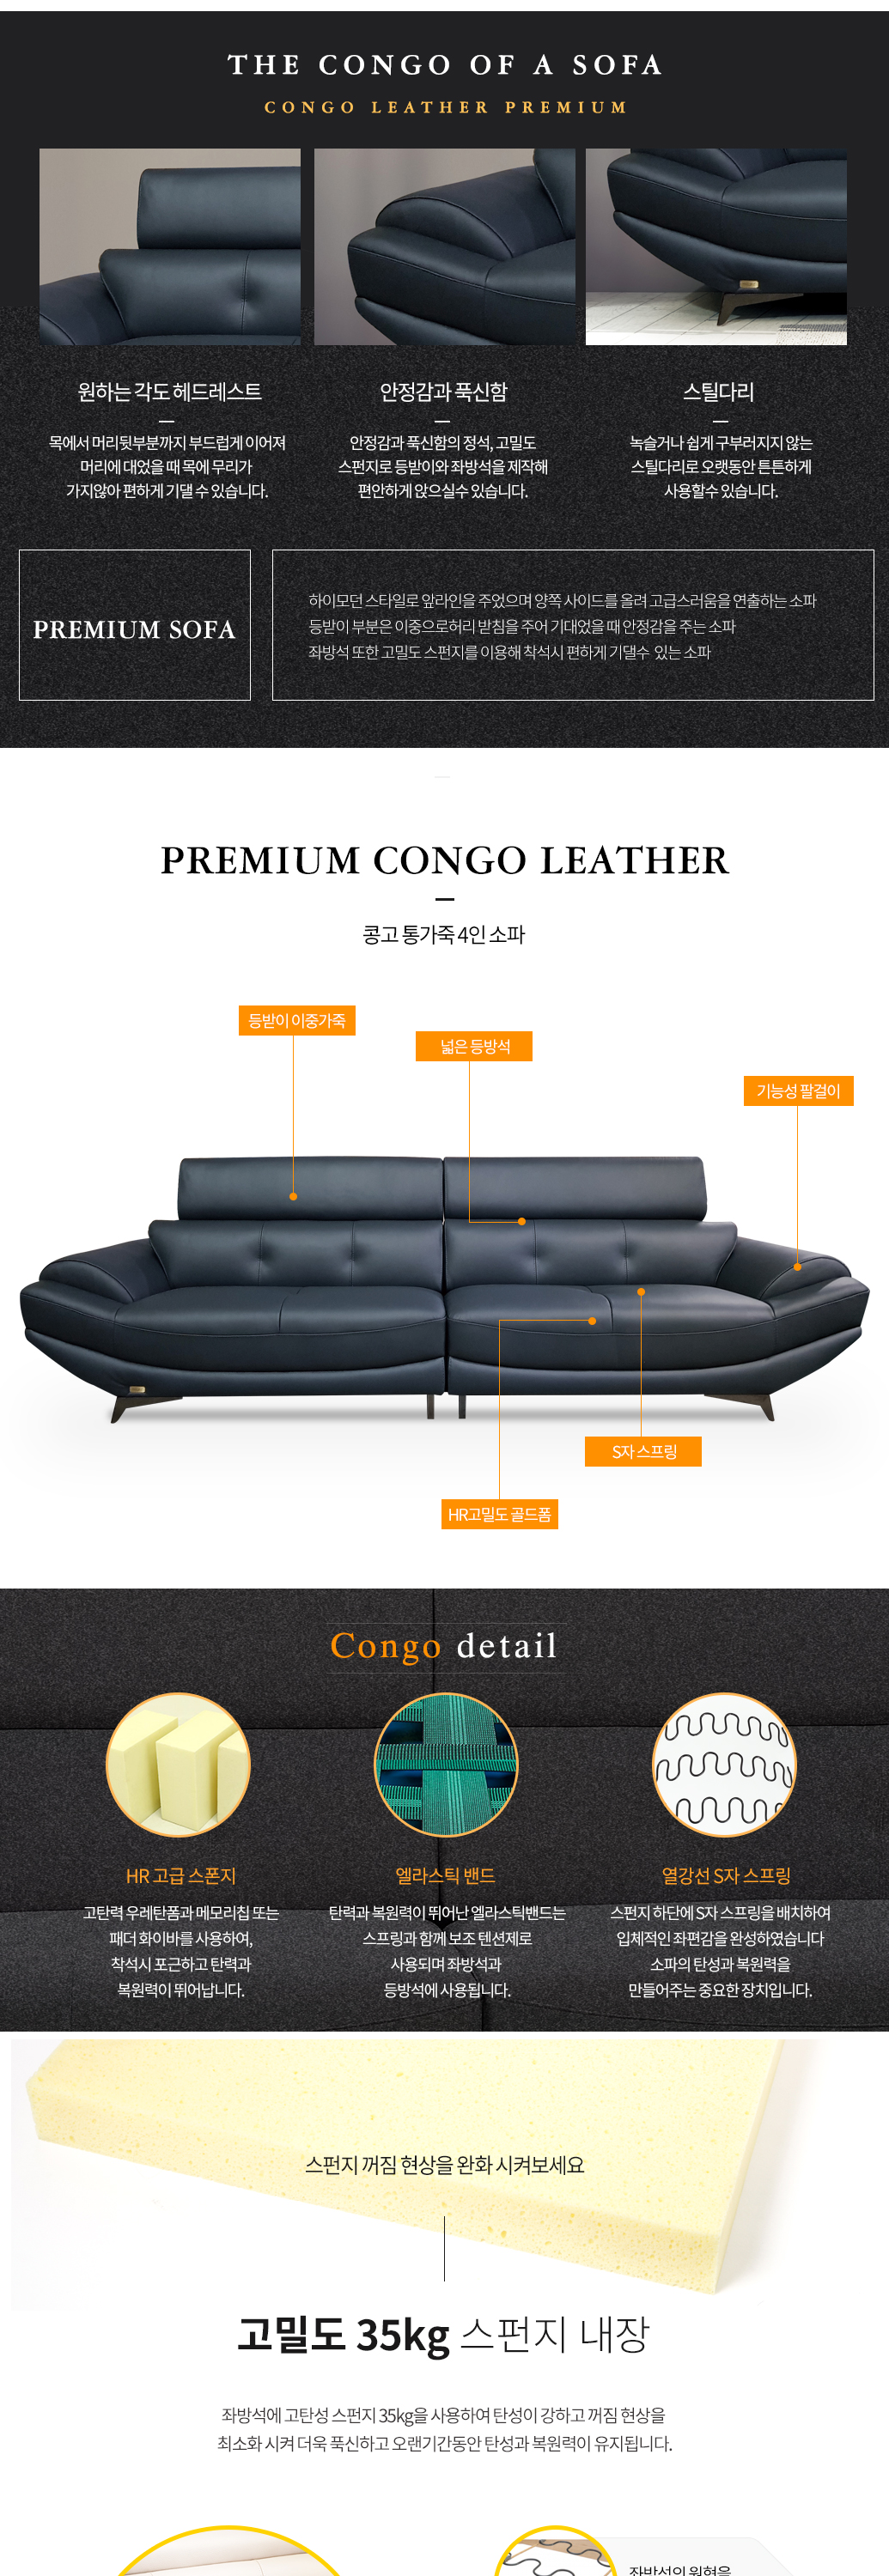 Congo_leather_02.jpg